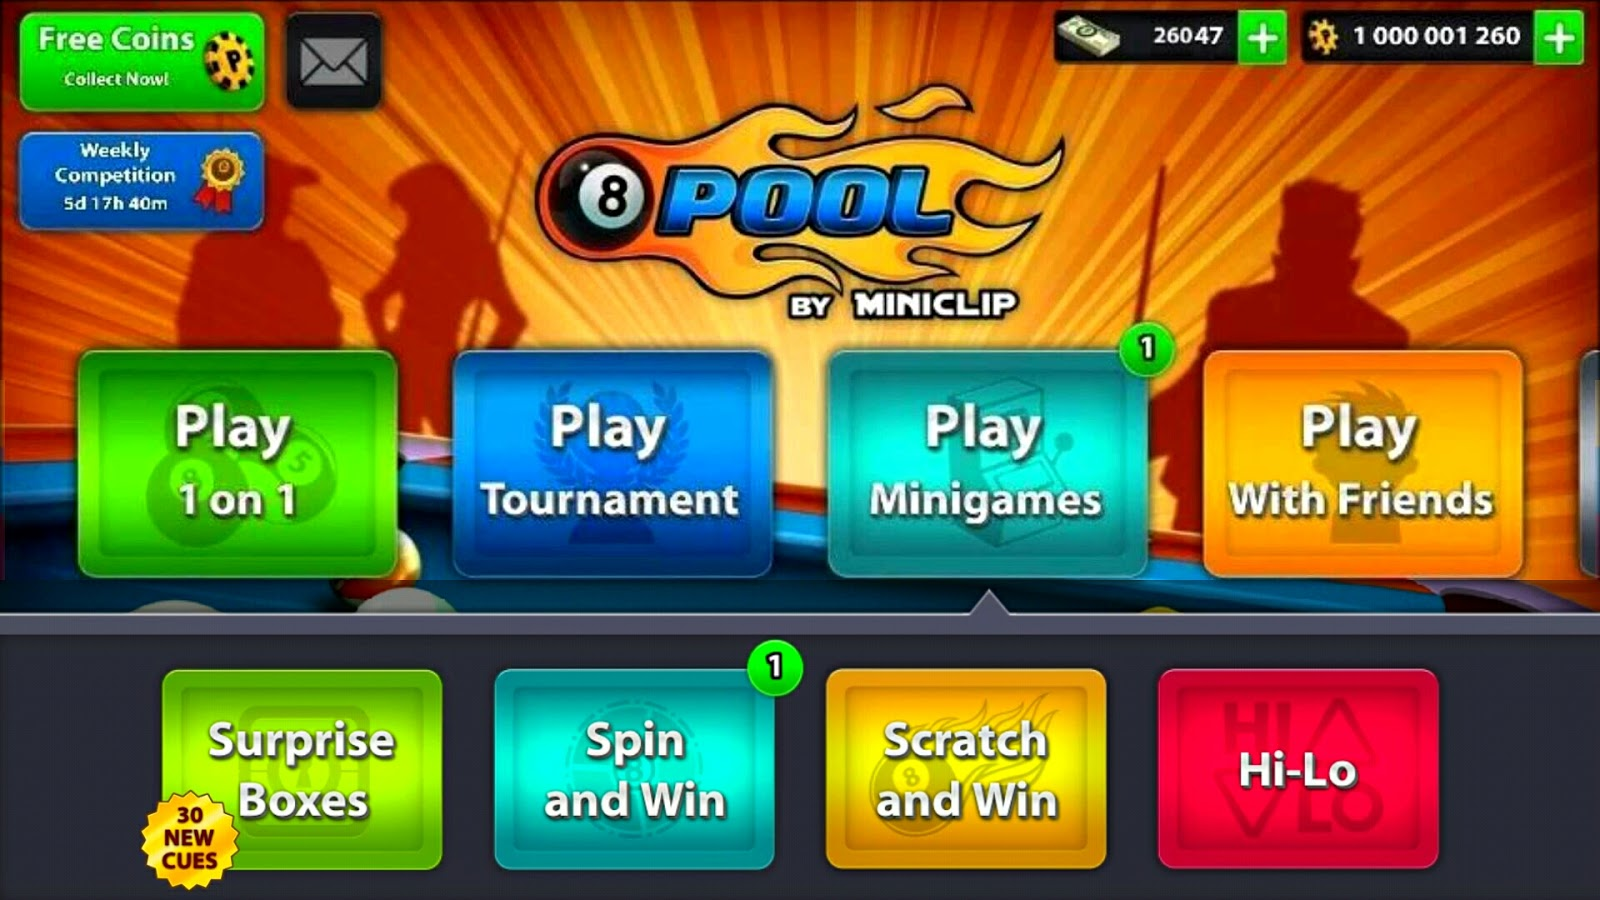 Cash Pool Was Ist Das 8 Ball Pool Mod Menu Hack Mod Apk No Root Unlimited Money